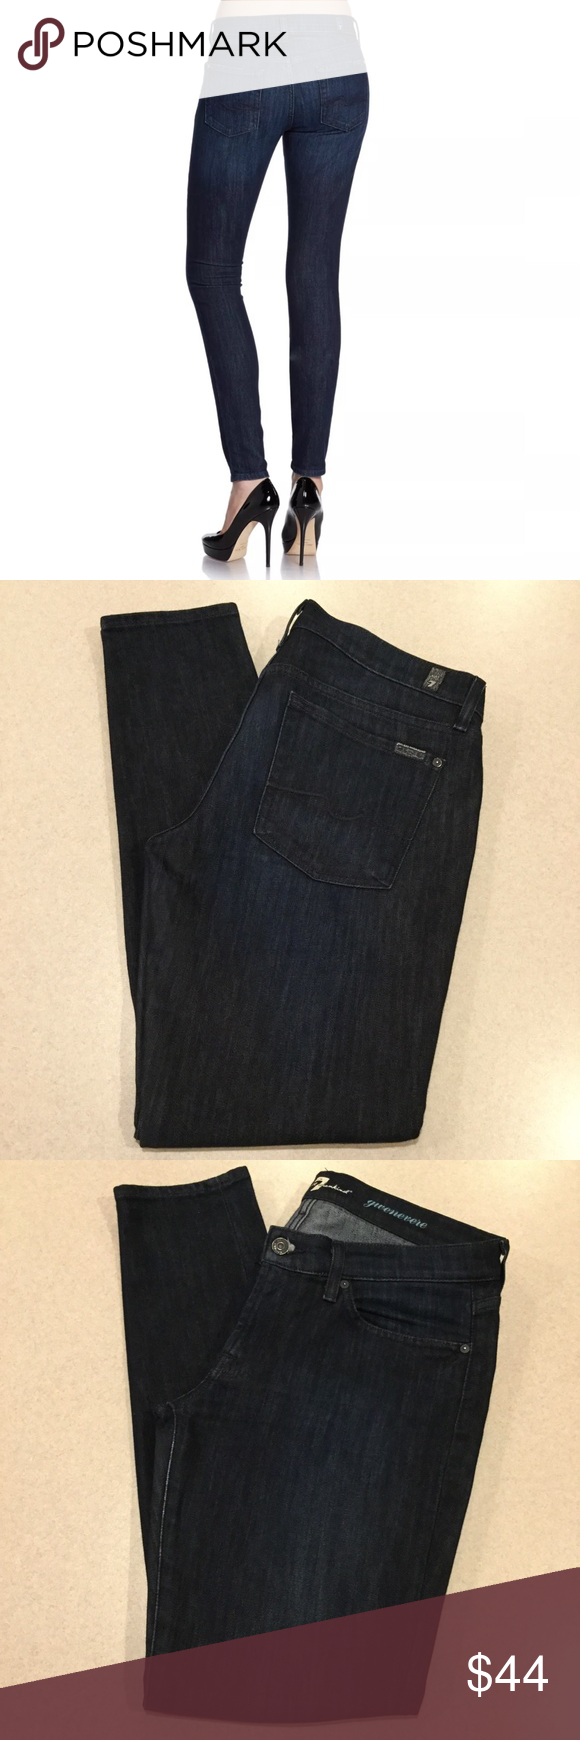 7 For All Mankind Jeans 31X31 Gwenevere Skinny! 7 for all mankind women's jeans  Gwenevere skinny Lake Hollywood wash Size 31 31 inch skinny inseam (hits at bottom of ankle as shown in modeled pictures) Modeled pictures are of exact fit and wash! Beautiful dark vibrant blue wash with nice light fading Great preowned condition, no flaws! Retailed for $189.00  All of my items come from a smoke free, pet free home and are authenticity guaranteed! Please ask any questions and reasonable offers…